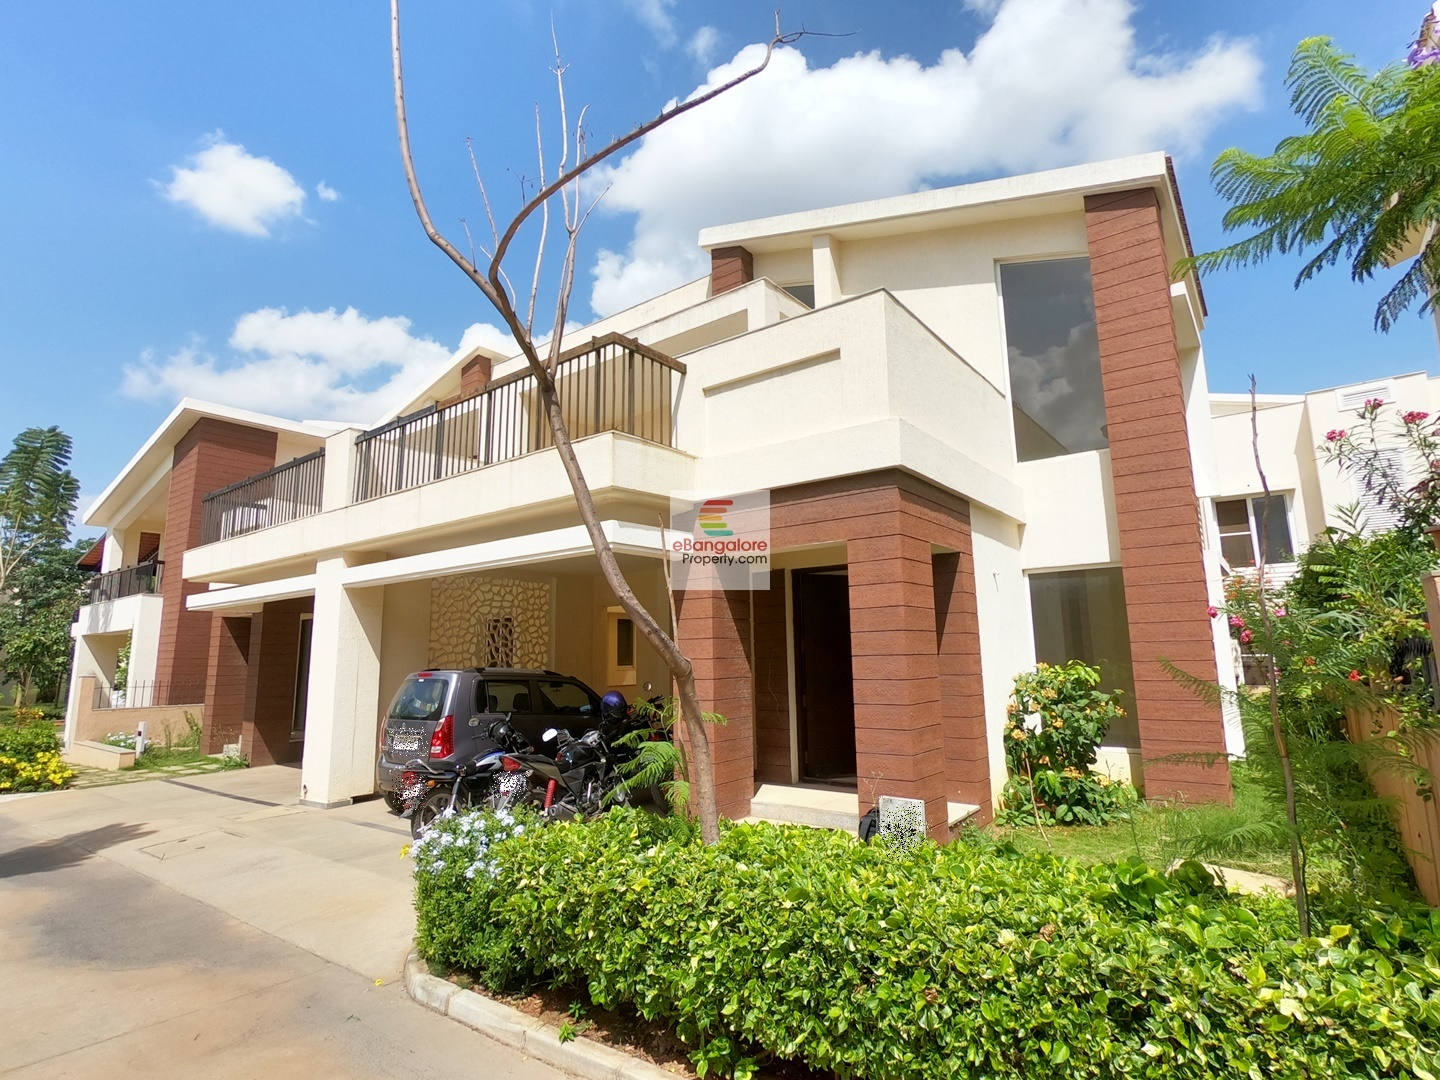 Prestige Mayberry Whitefield – 3BHK Duplex Villa for Sale – Gated Community with Luxury Amenities